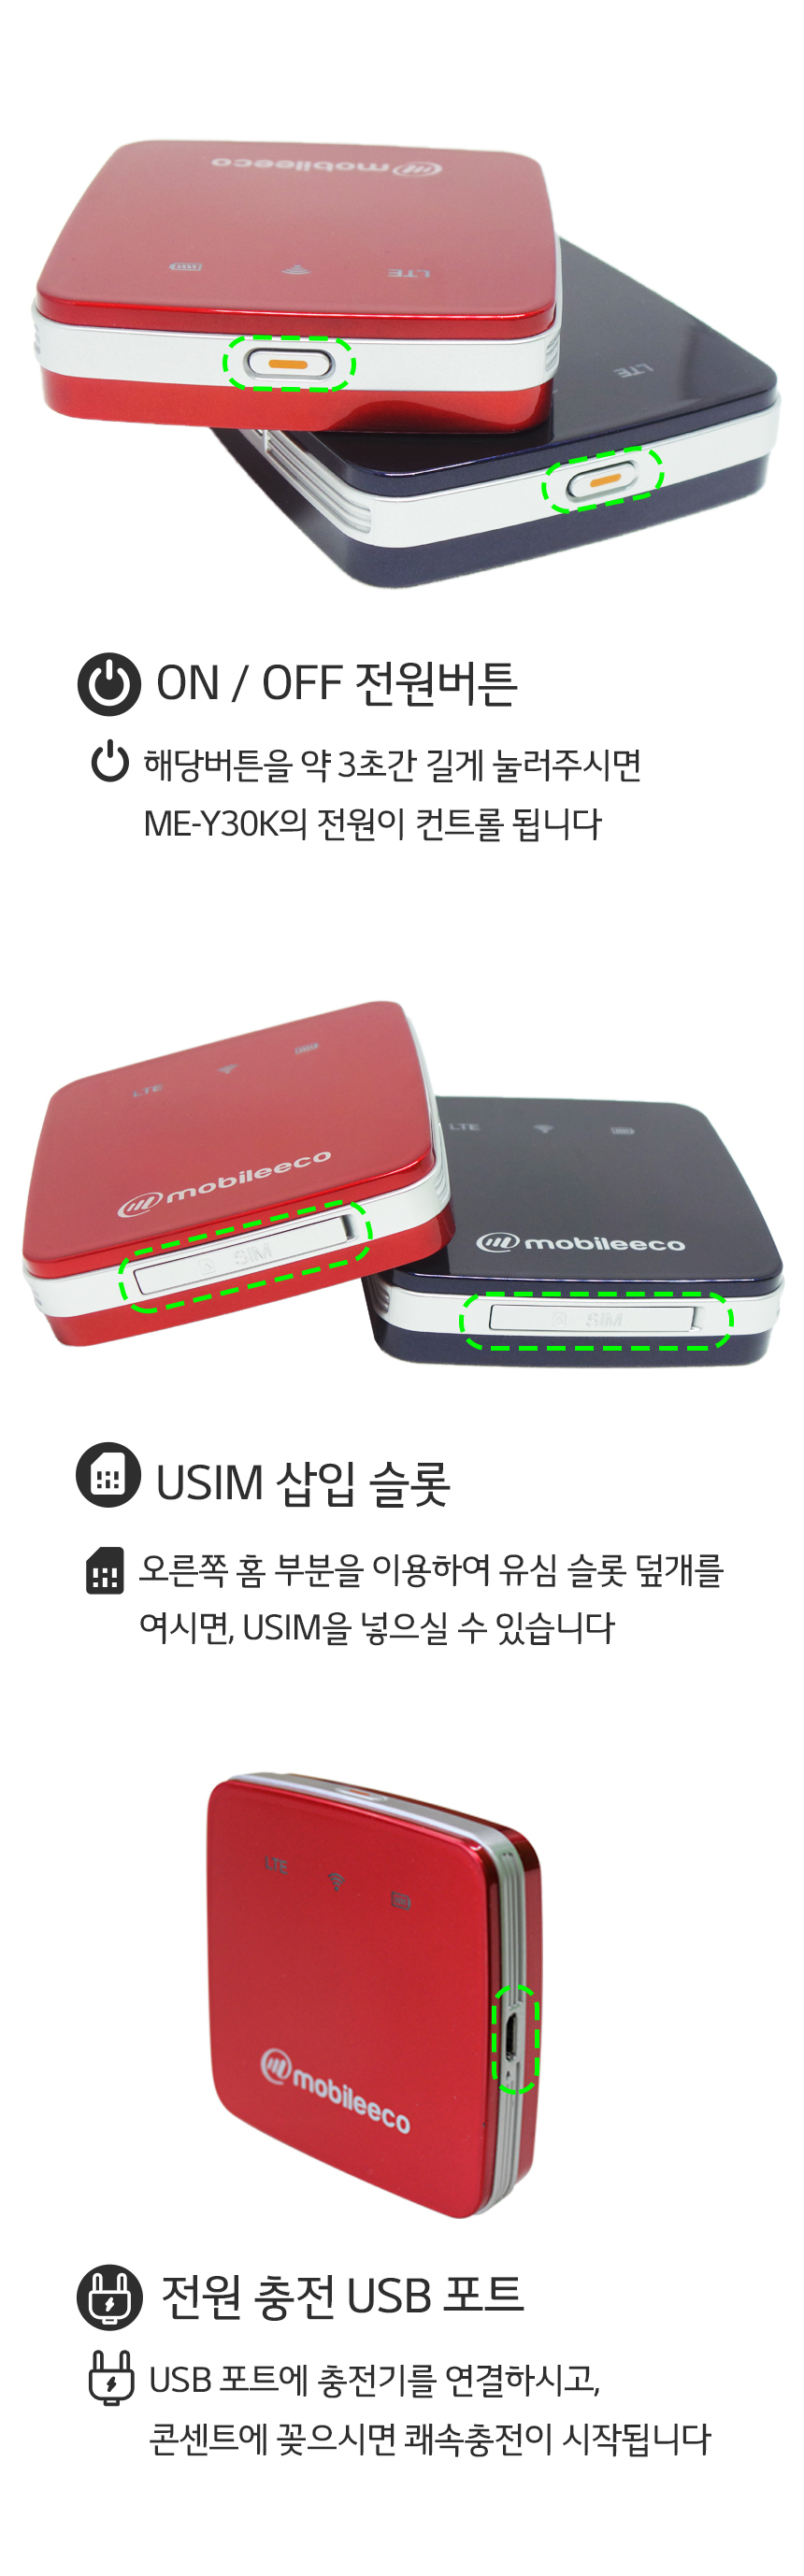 LGU%2B_mobile_router_08.jpg